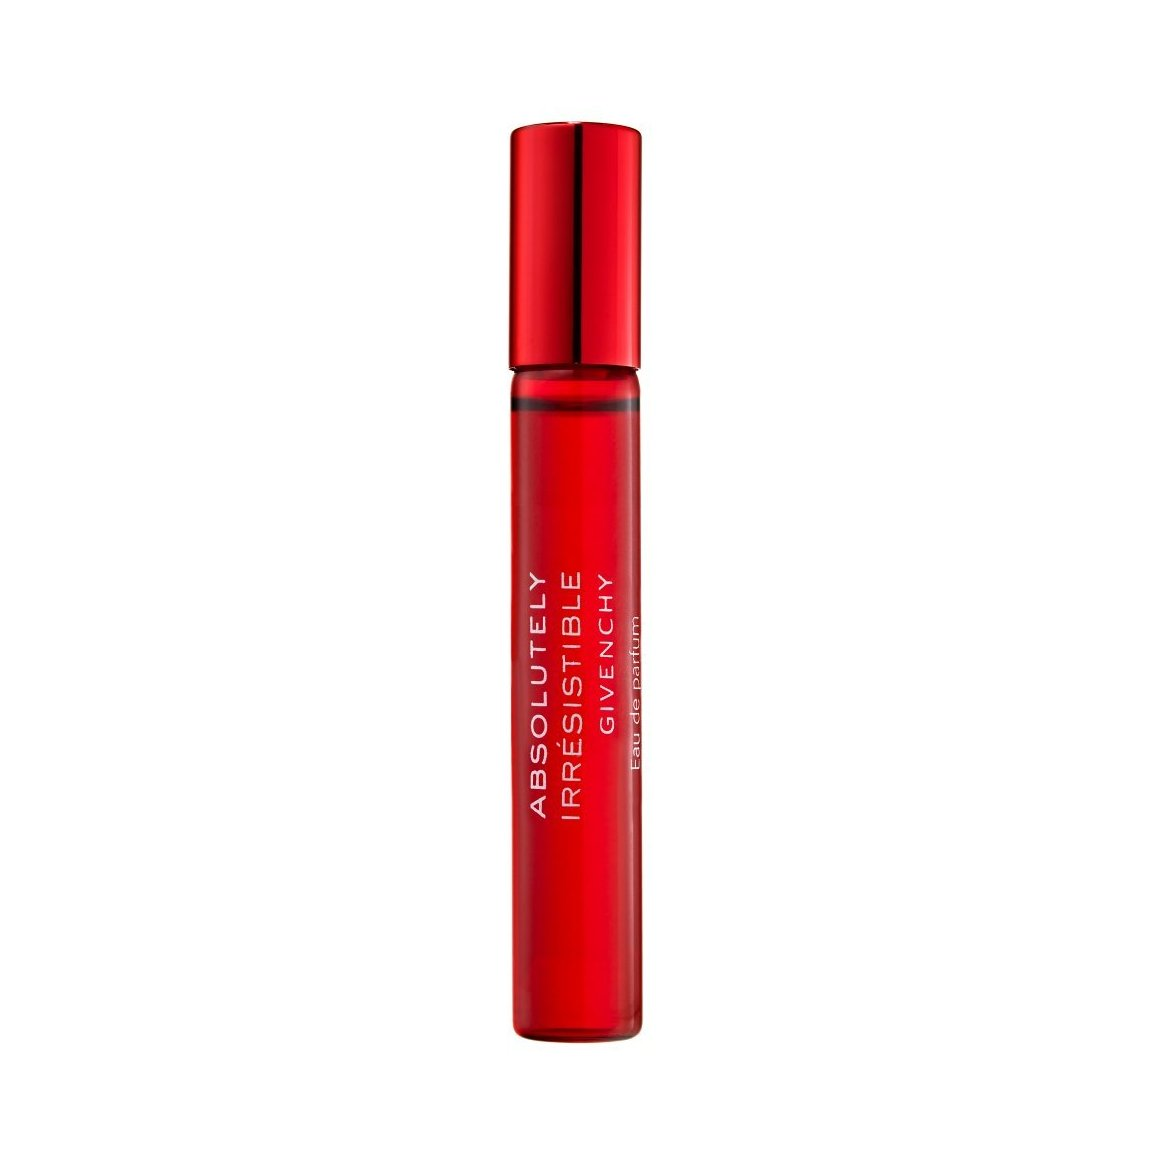 Givenchy Absolutely Irresistible Givenchy Eau De Parfum Roll On